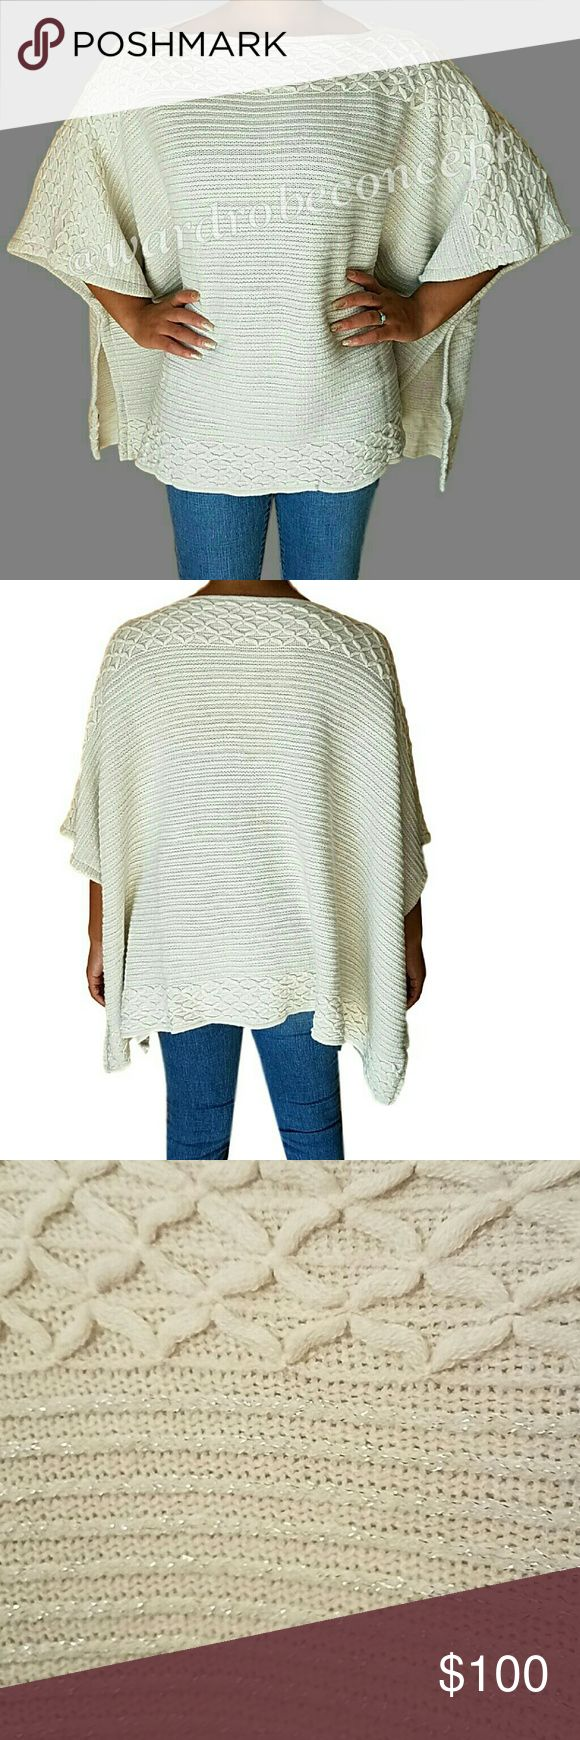 1 HR SALE! Soft Textured Ribbed Sweater Poncho *Boutique item = BRAND NEW without tags. *All photos are of the actual item. *All photos taken by @wardrobeconcept. Textured Ribbed Cream Poncho with Gold Speckle throughout. Boat neckline. 100% soft Acrylic. One Size fits most. Measurements available upon request. No rips, tears, or stains. Please use offer button for all offers. Feel free to bundle for a great discount! No trades. Boutique Sweaters Shrugs & Ponchos